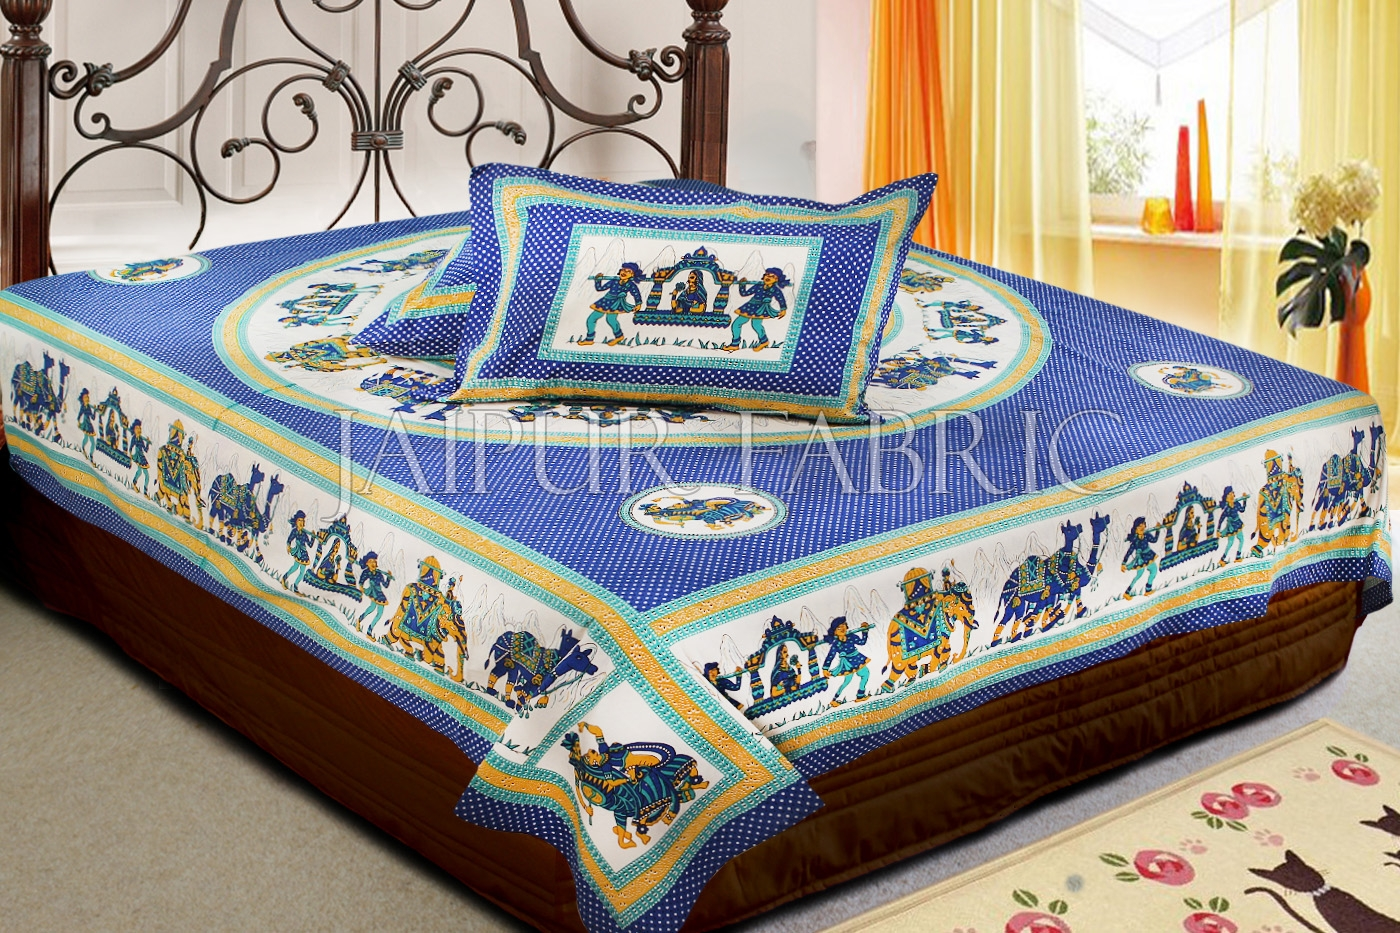 Blue Base Rajasthani Doli Hand Block Print And Folk dance Design Double Bed Sheet with Pillows Cover